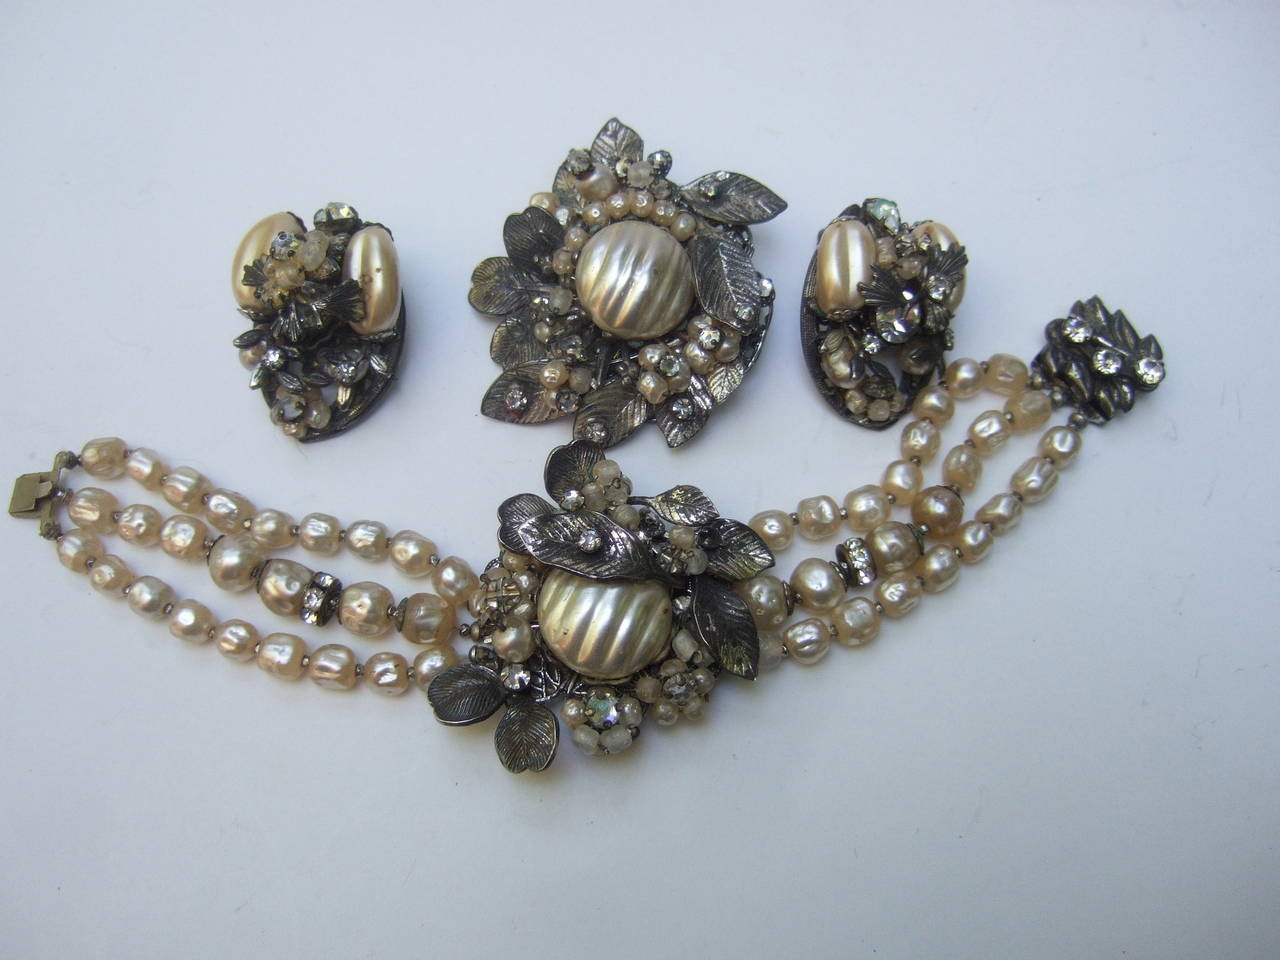 1950s Costume pearl brooch, bracelet & earrings by Robert  The elegant vintage set is designed with a larger glass enamel  pearl embellished with tiny enamel seed pearls & diamante  prong set crystals. The embellished are wired to pewter